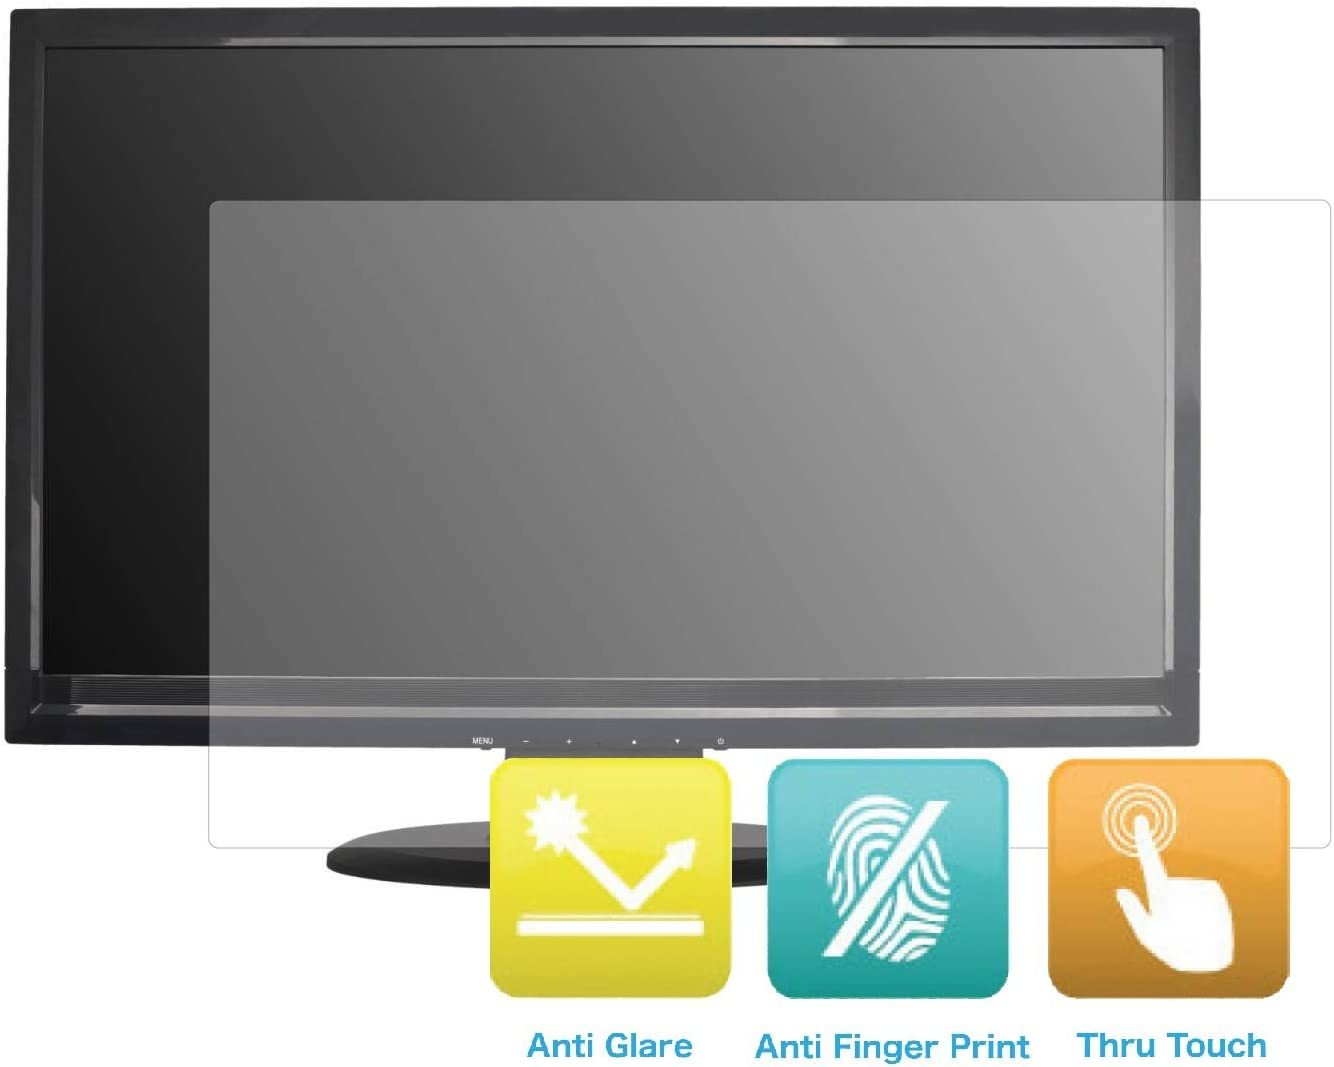 Anti-Glare and Anti Finger Print Screen Protector (3 Pack) for 21.5 Inches Widescreen Desktop Monitor